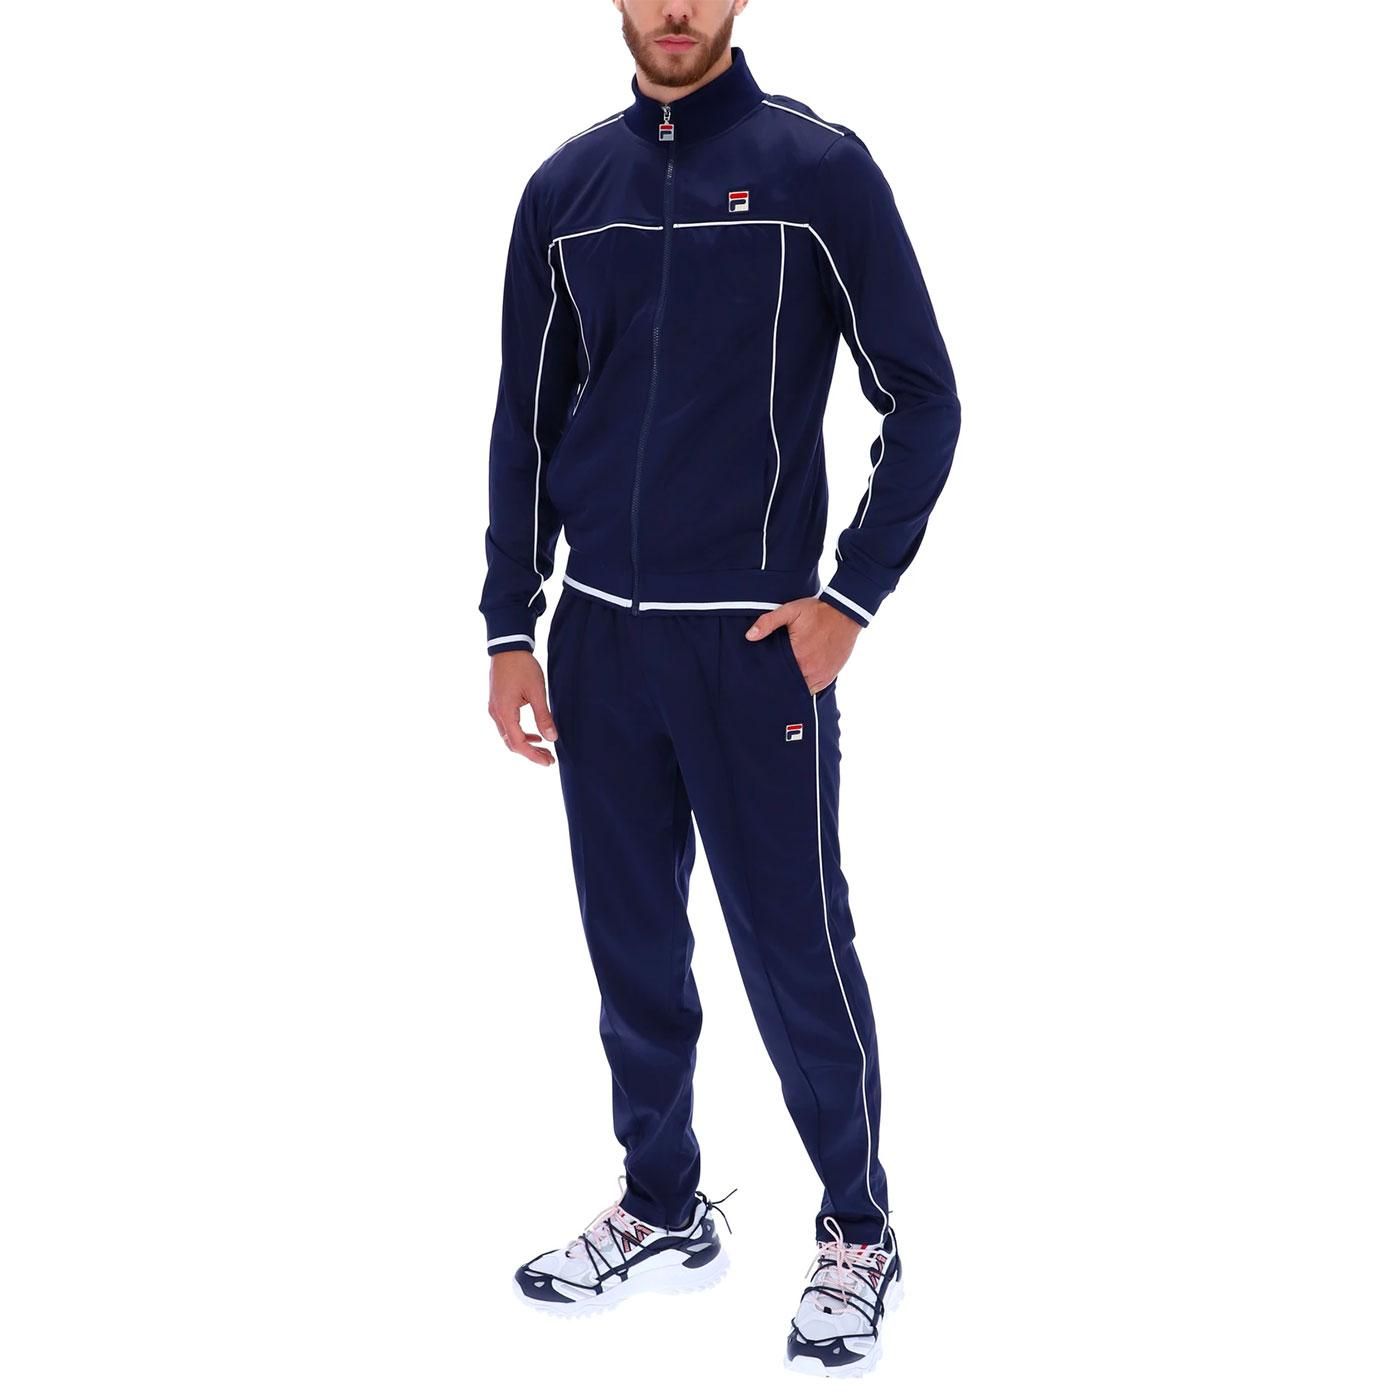 Terry FILA VINTAGE Retro 80s Piped Tracksuit P